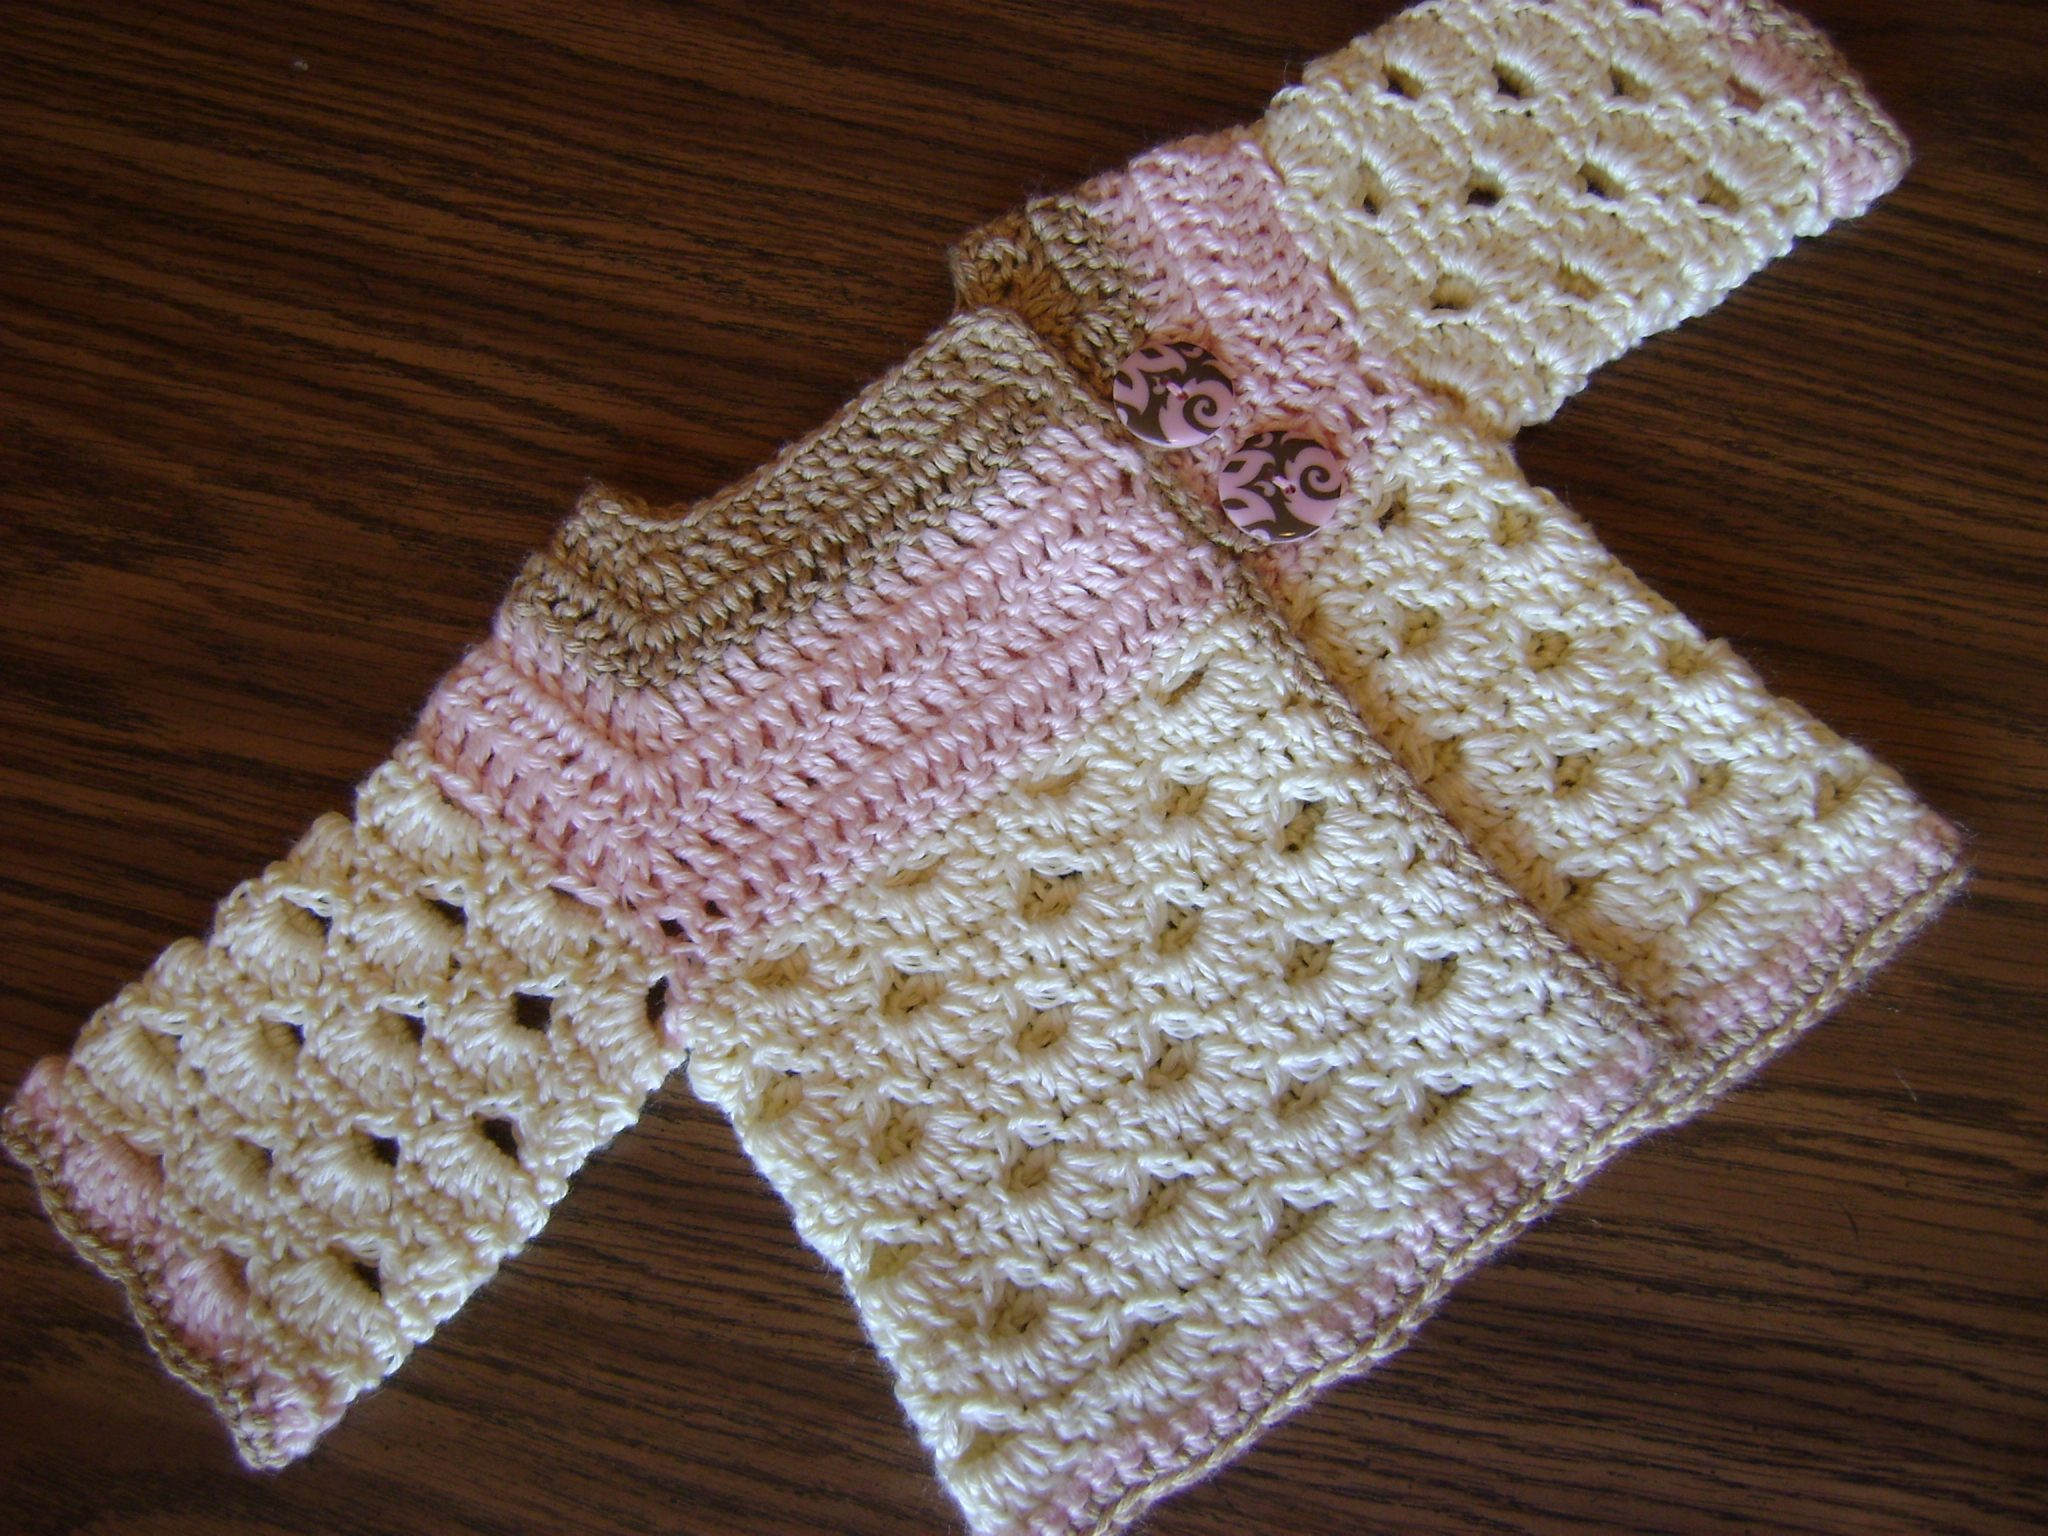 Elegant Easy Crocheted Baby Sweater Patterns Online Crochet and Easy Crochet Ideas Of Lovely 42 Pics Easy Crochet Ideas